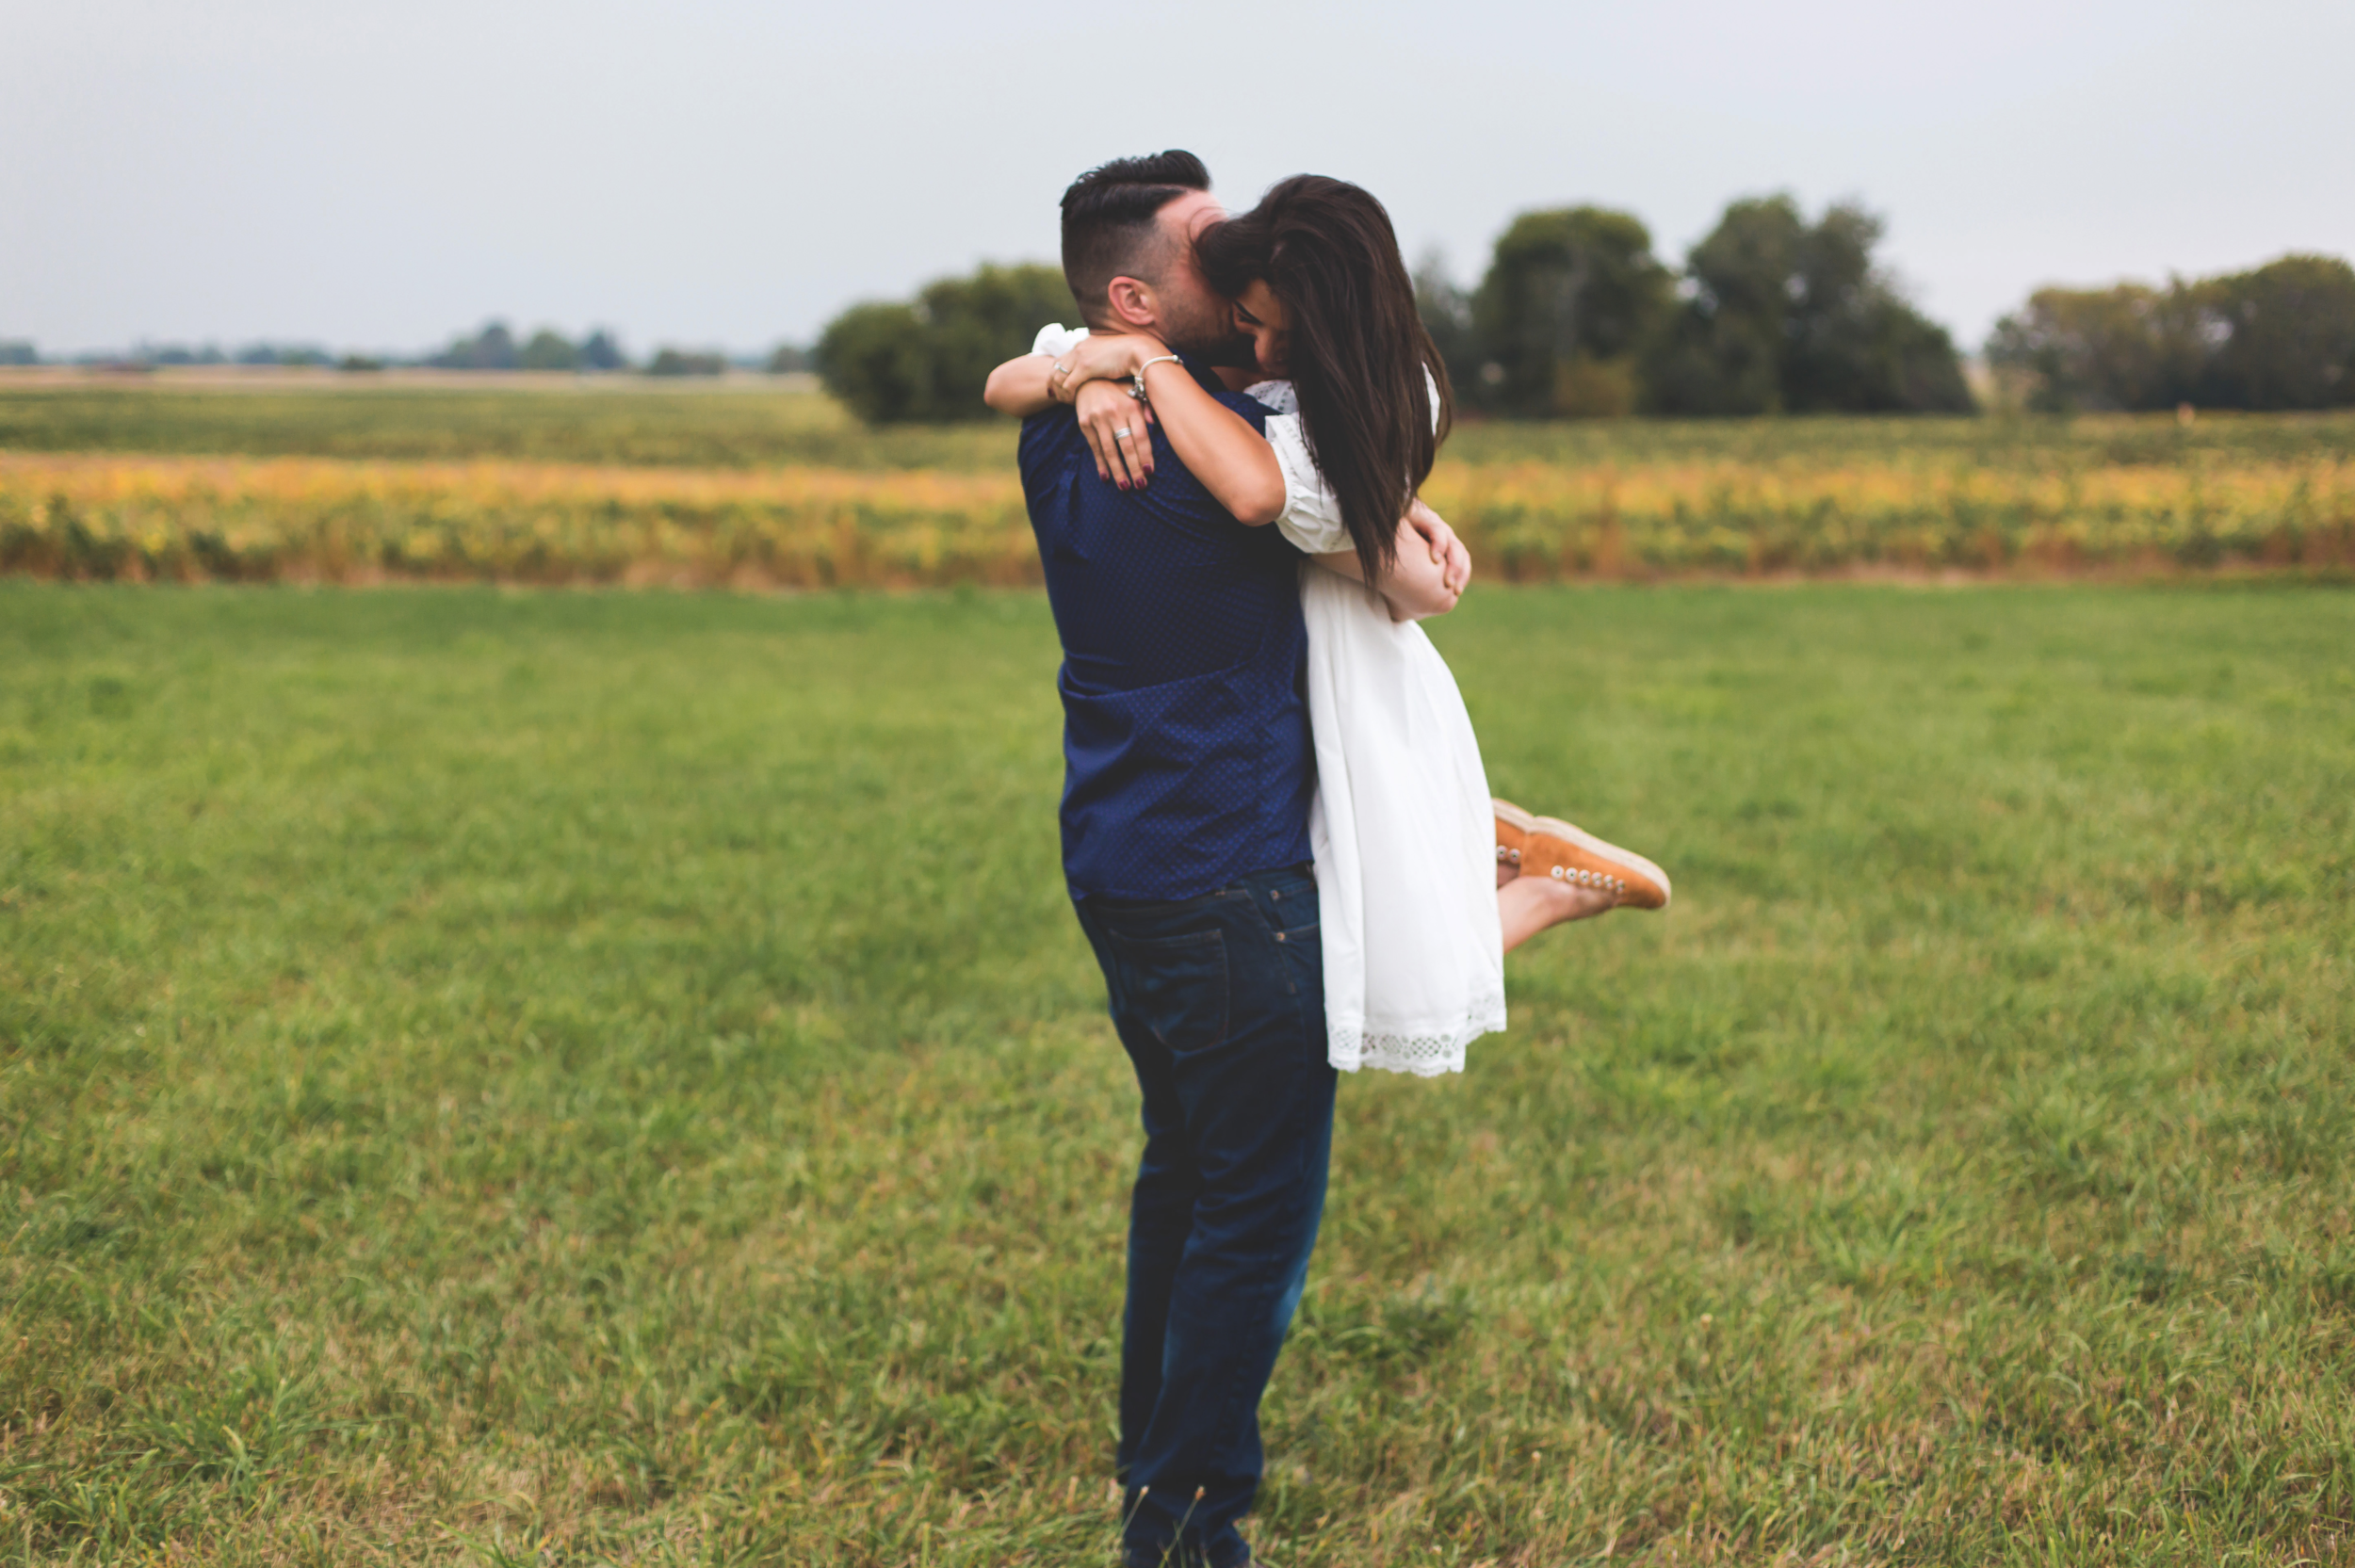 Engagement-Session-Hamilton-Burlington-Oakville-Toronto-Niagara-Wedding-Photographer-Engaged-Photography-Brantford-Airport-HamOnt-Engaged-Moments-by-Lauren-Photo-Image-25.png